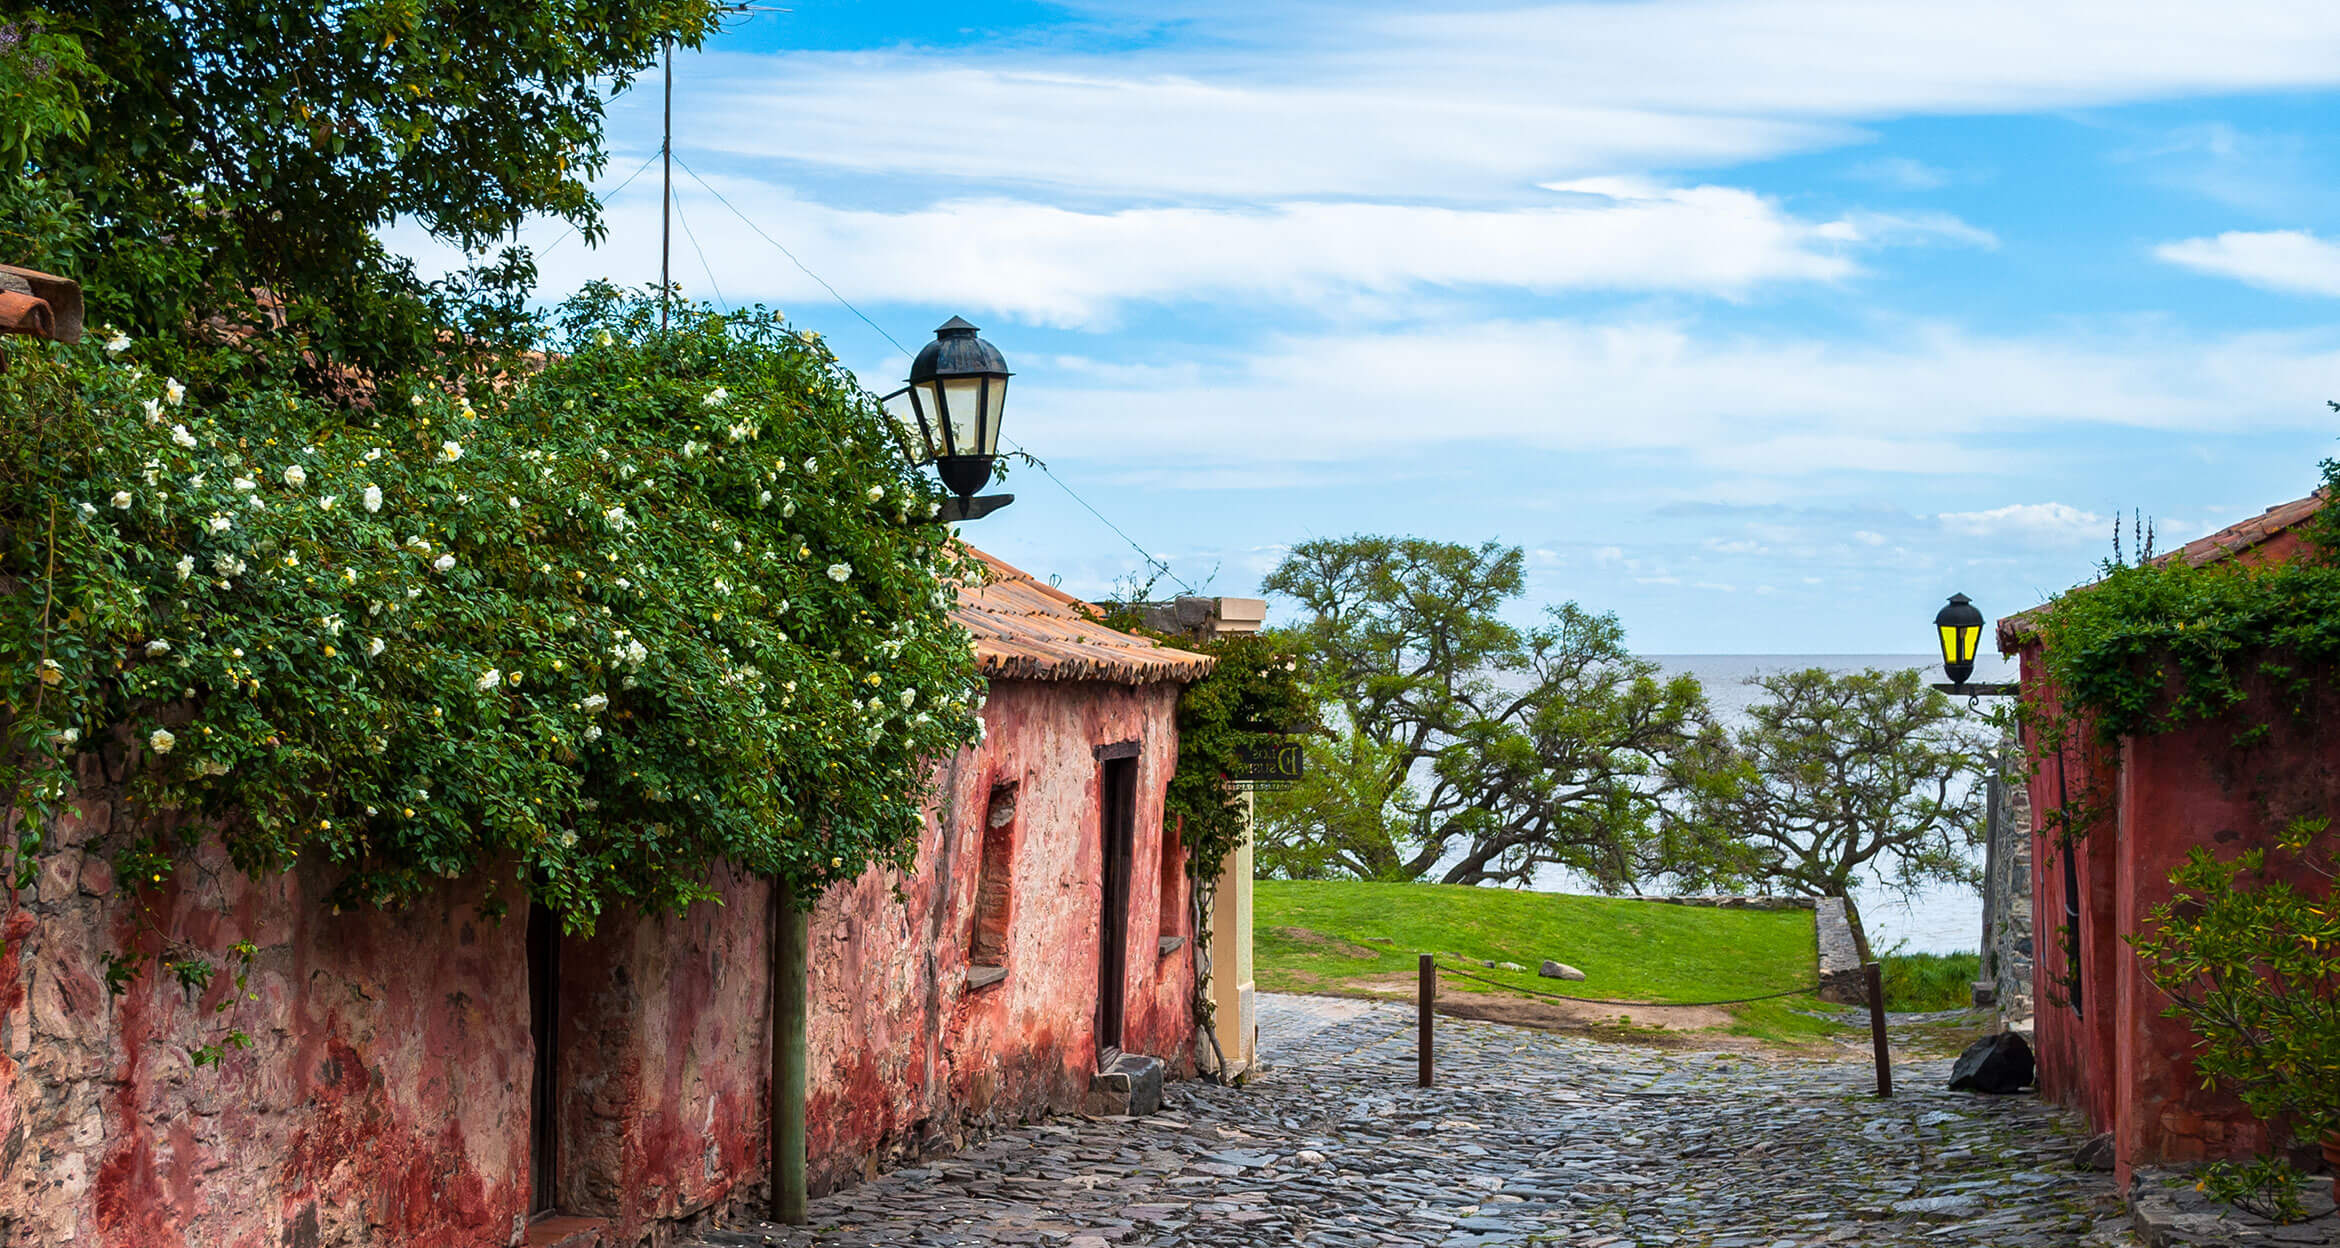 Beautiful home and flowers during Uruguay travel.